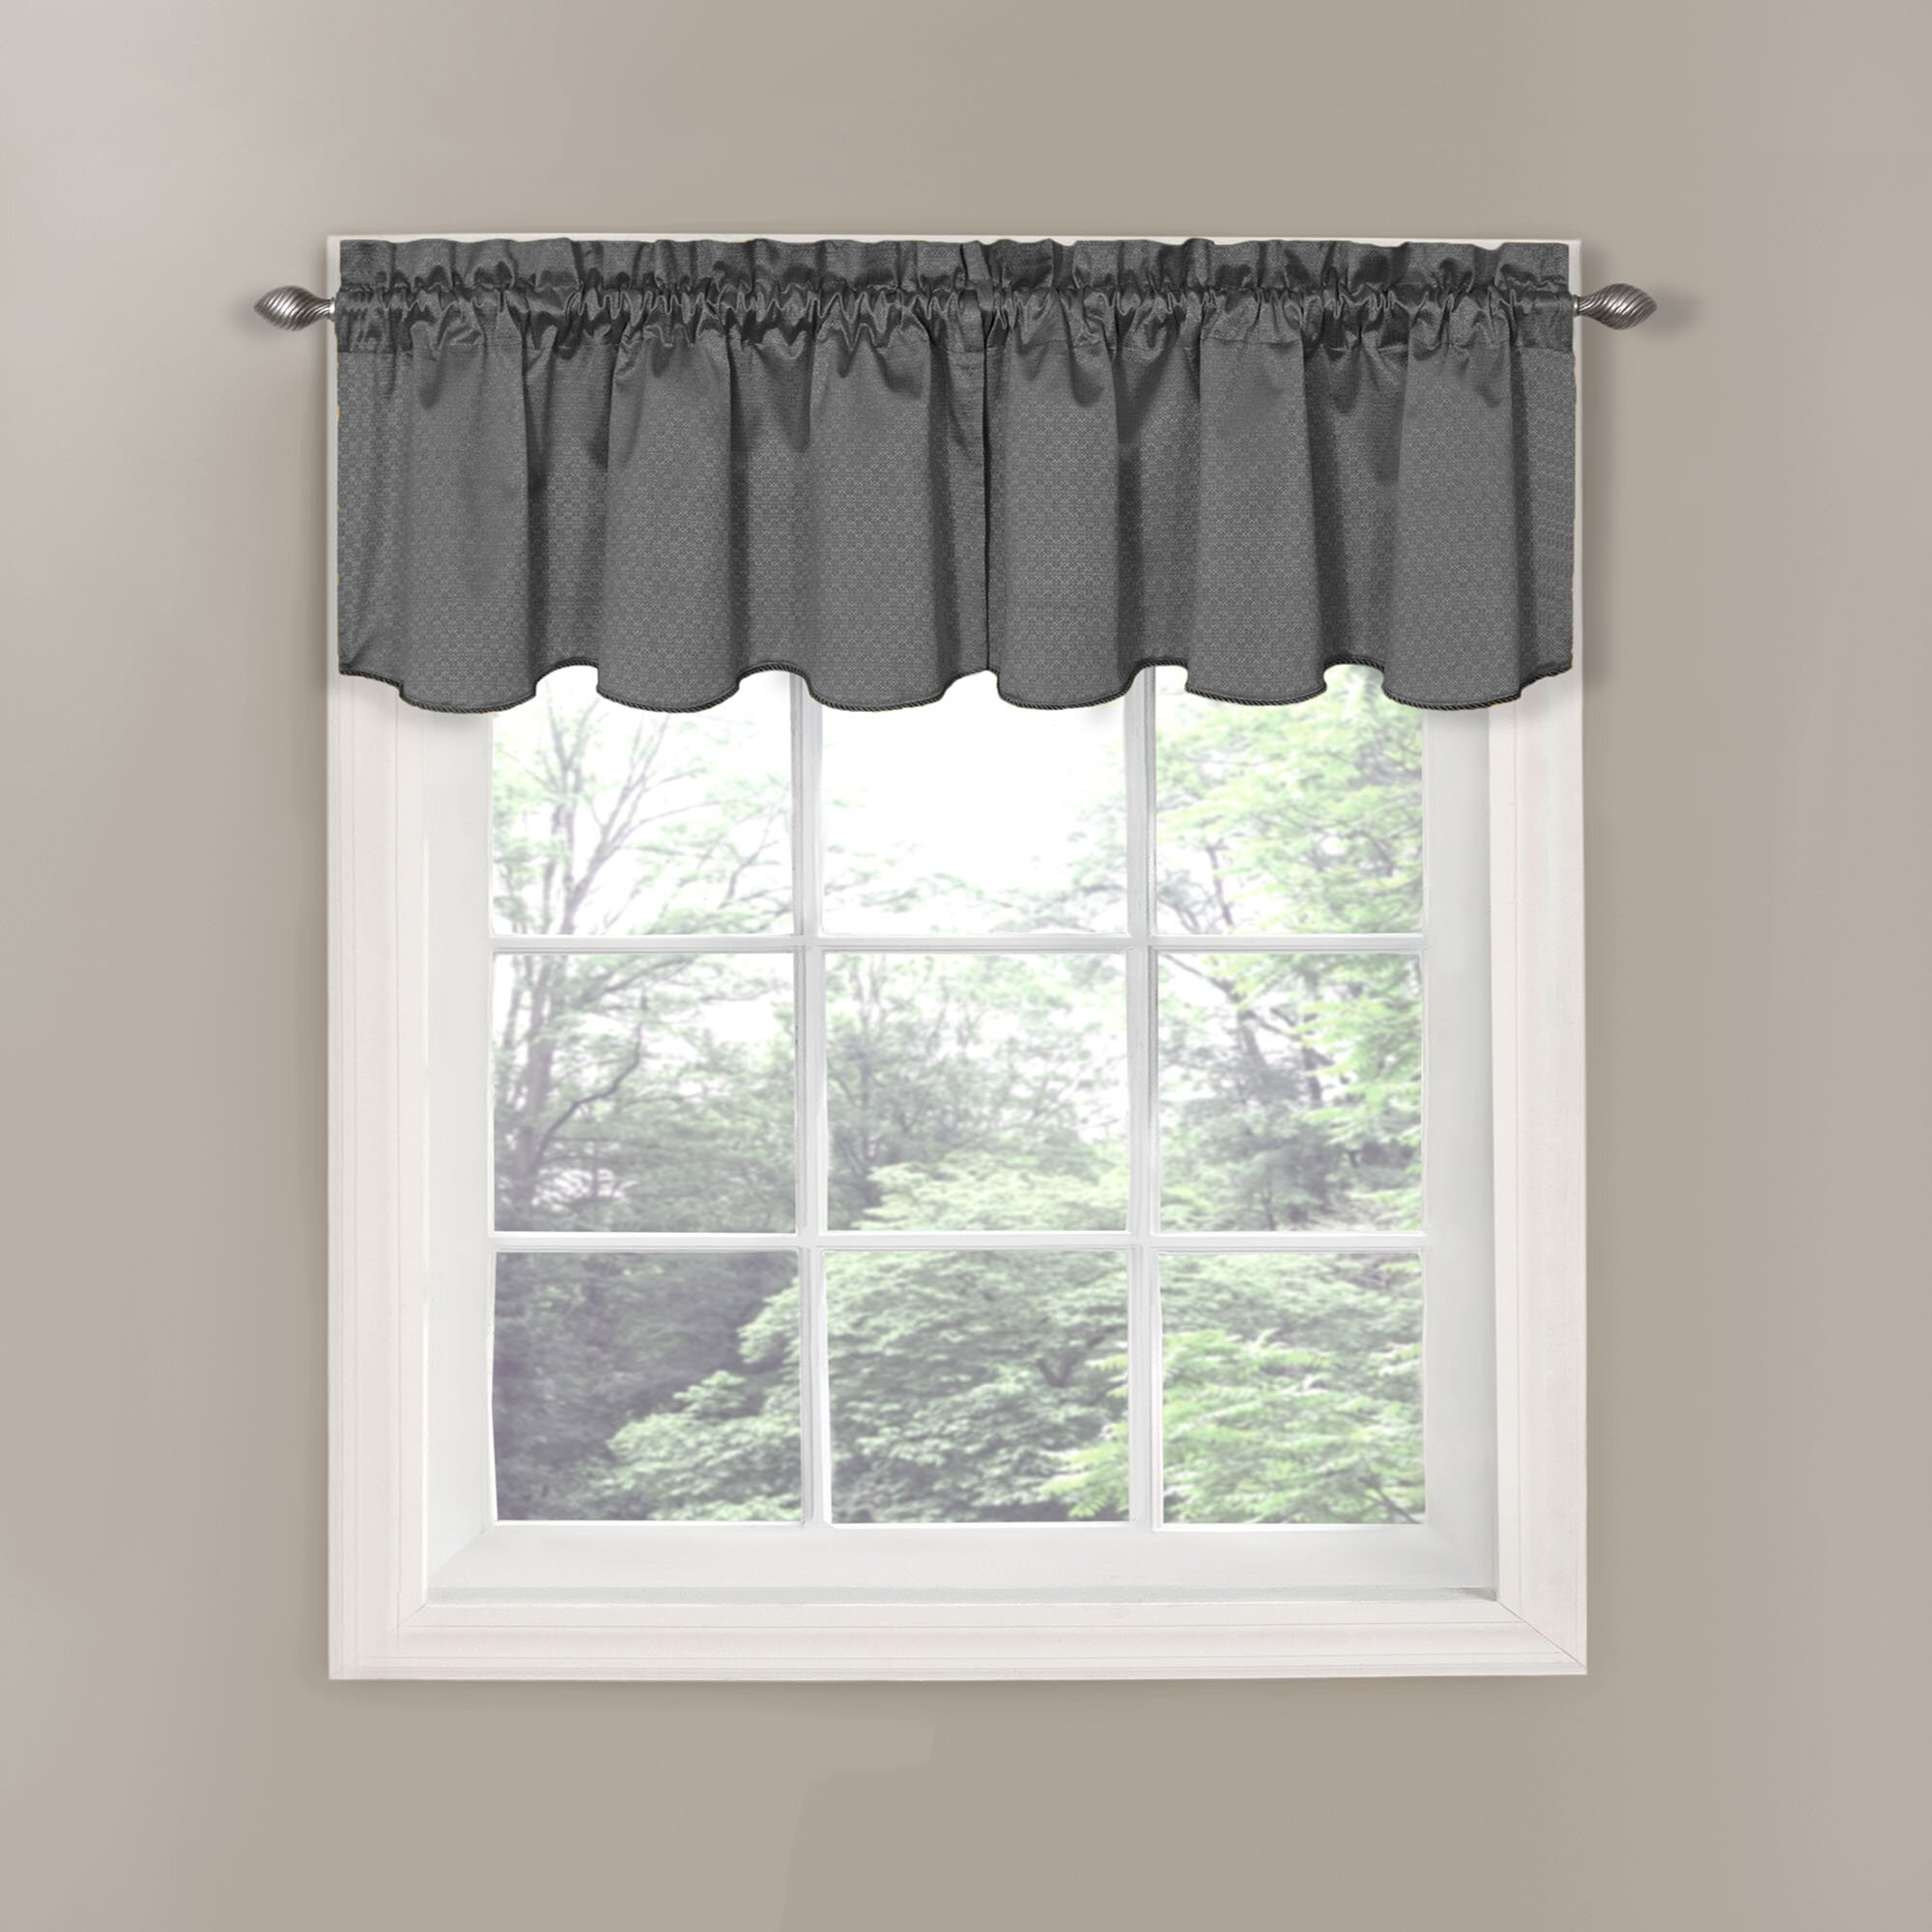 Darby Home Co Valasquez 42 Quot Blackout Window Curtain